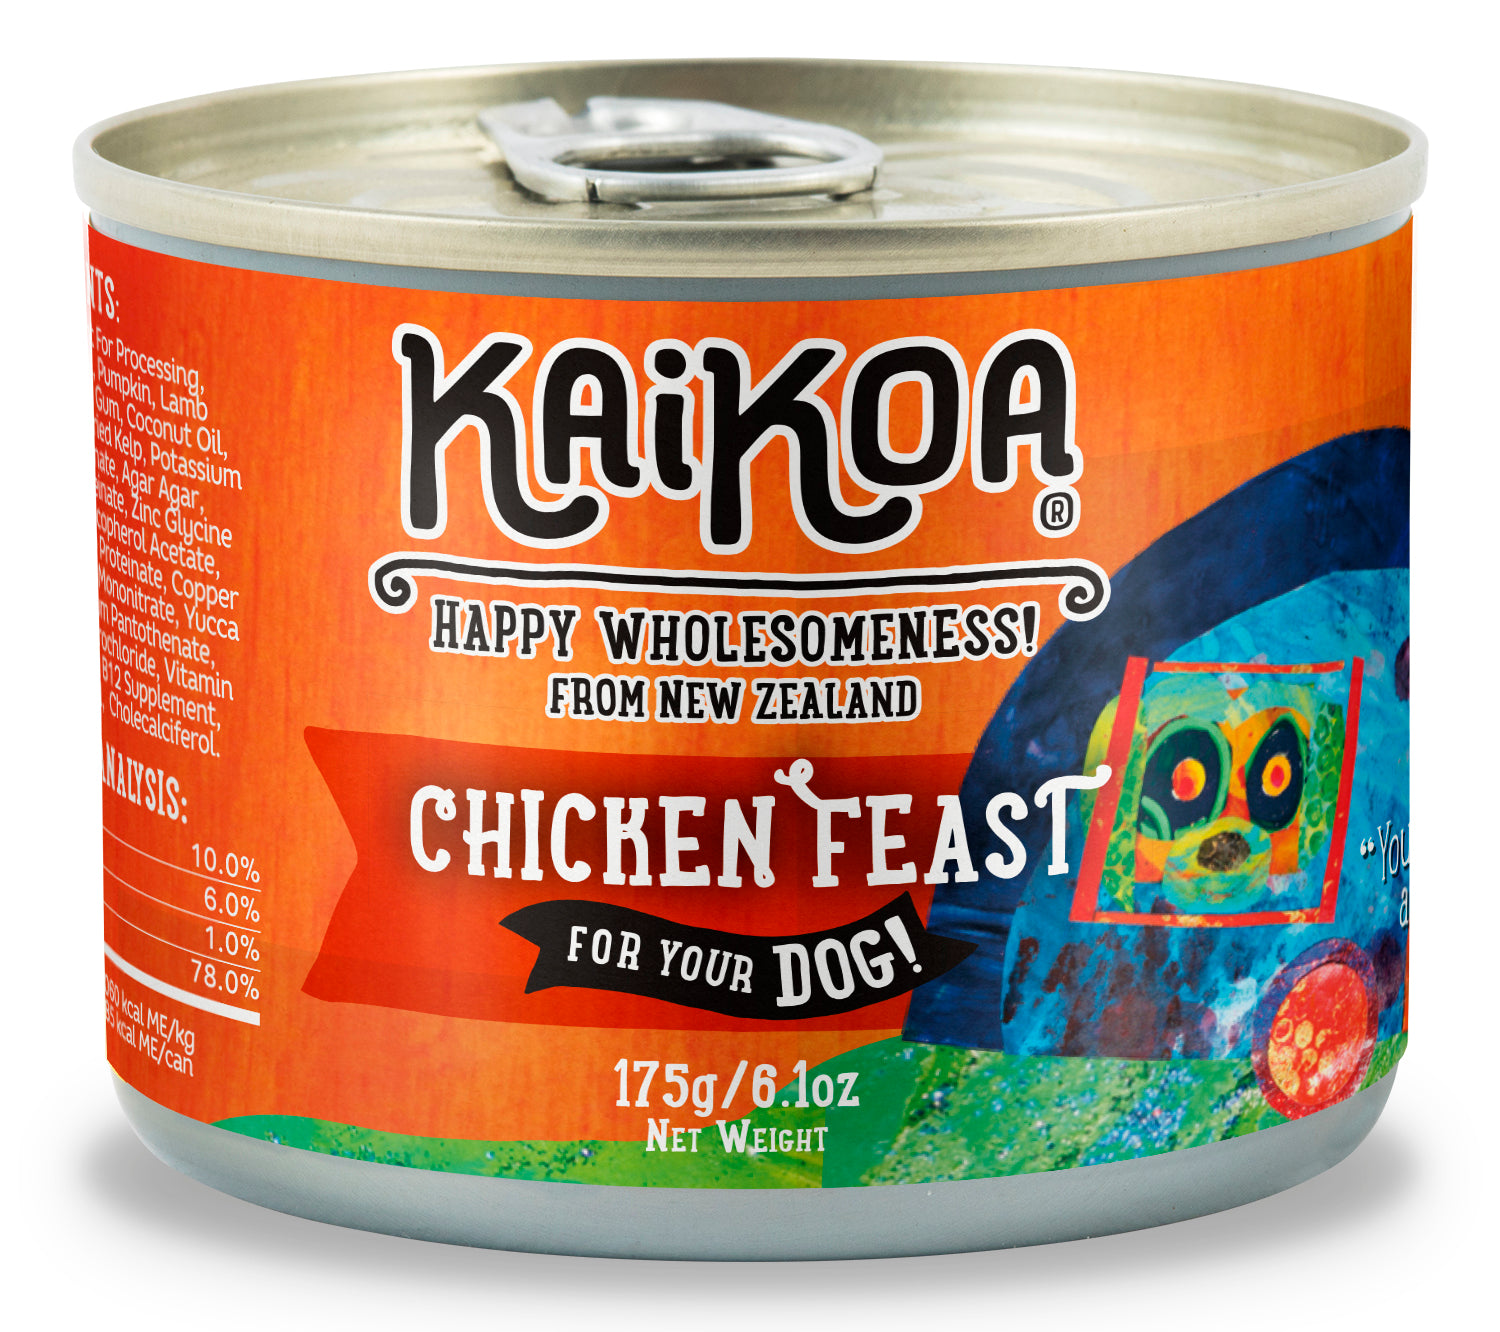 Chicken Feast For Your Dog